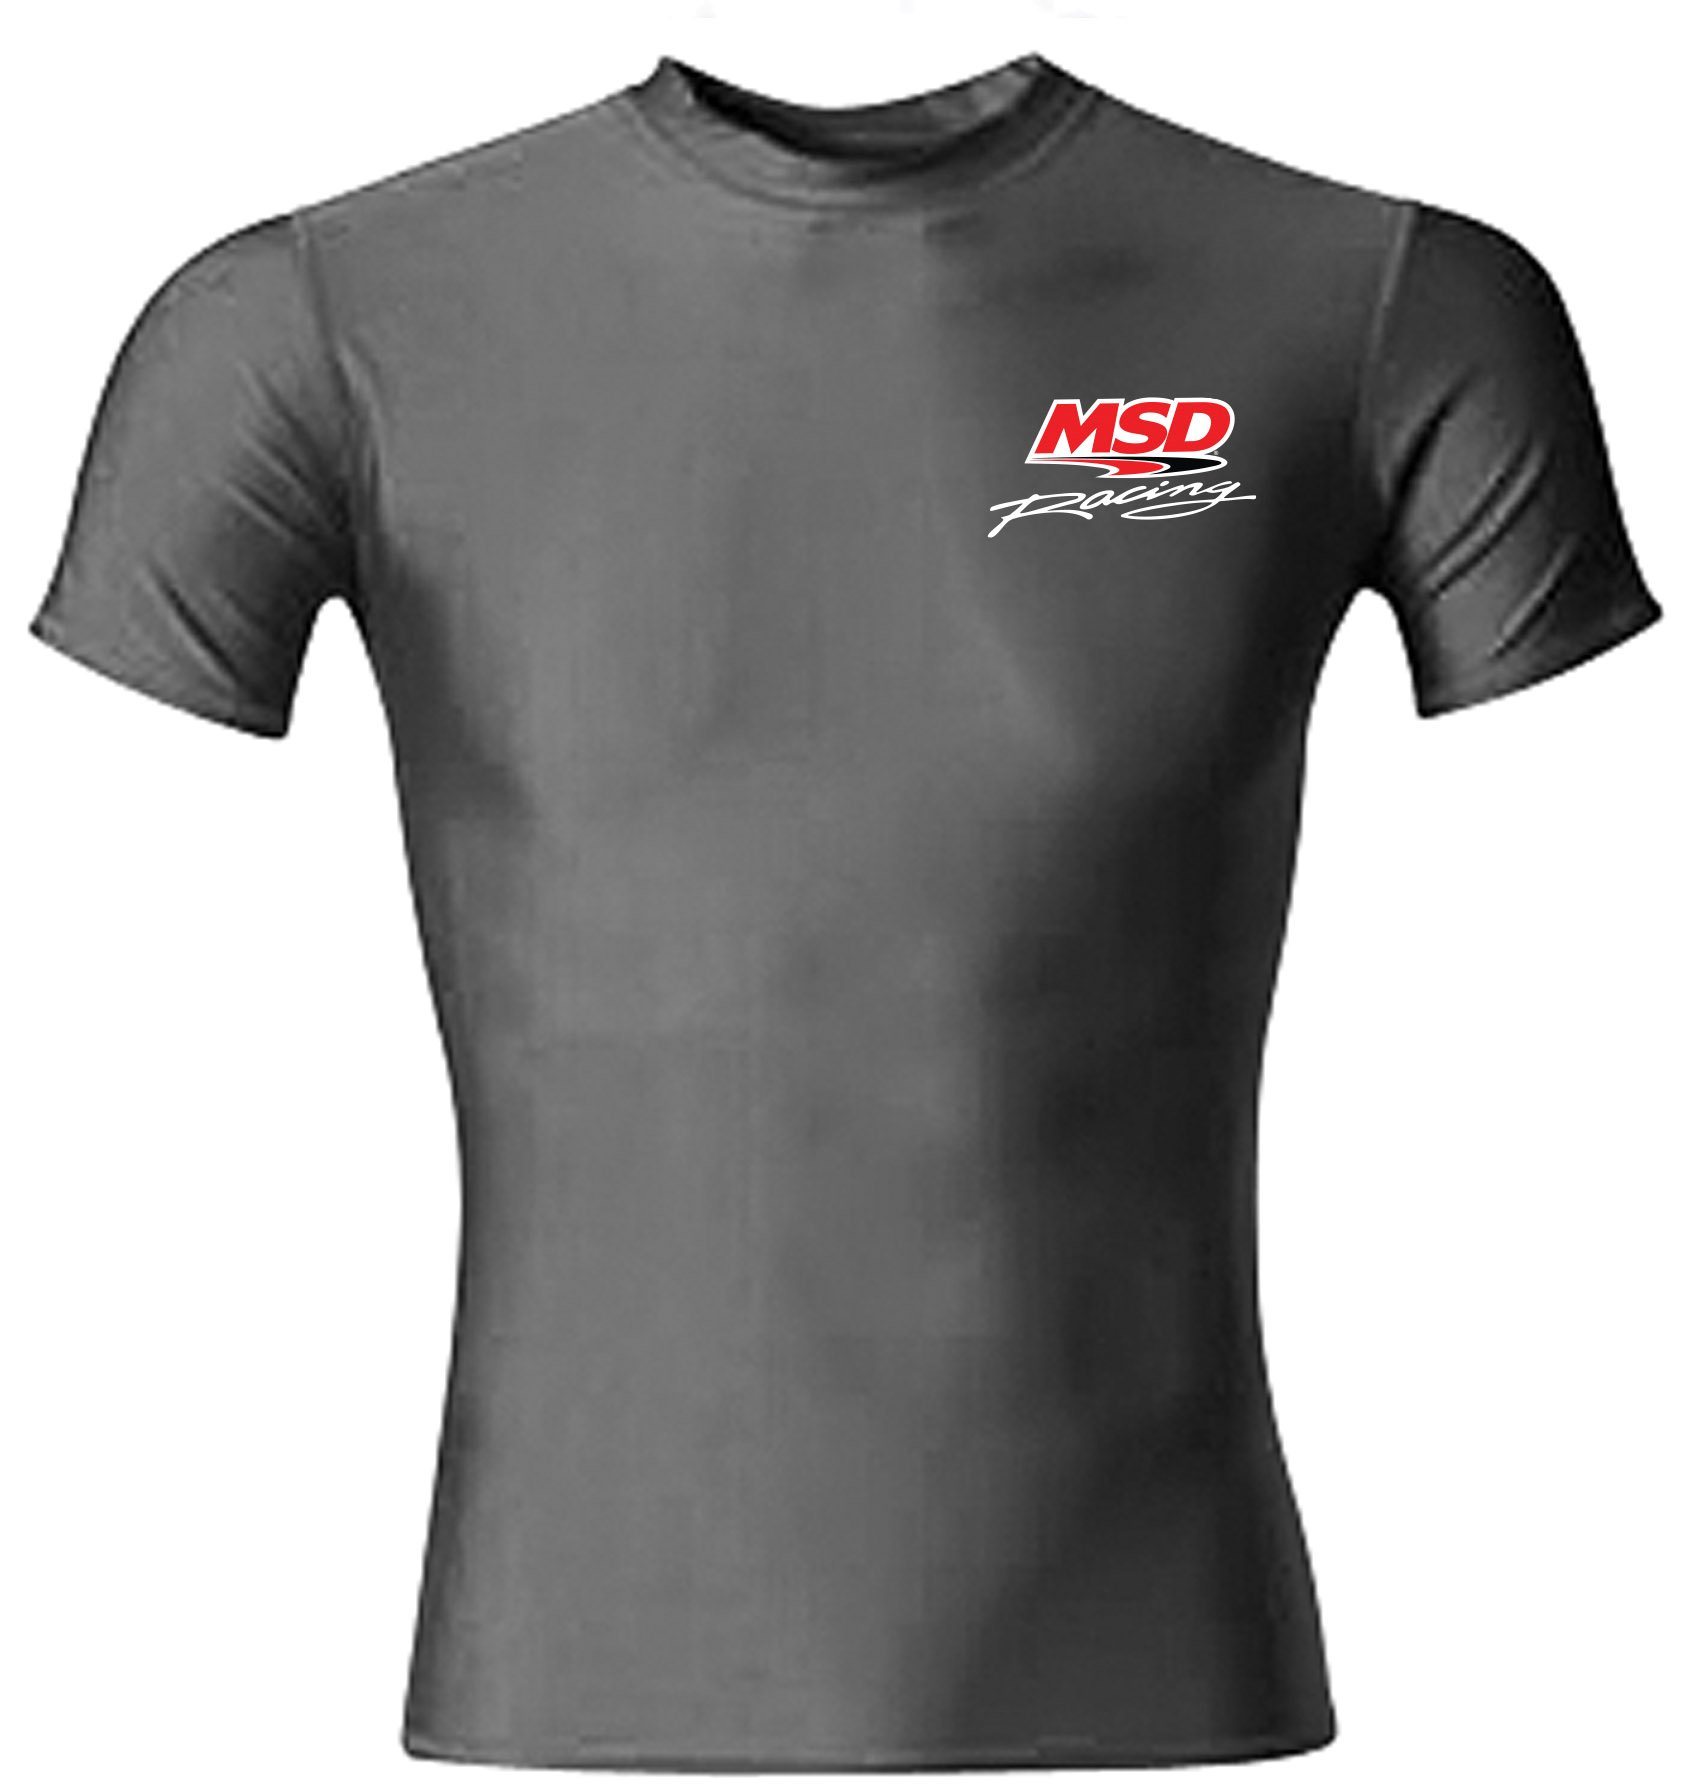 9545 - MSD Compression Crew Shirt, Black, Small Image